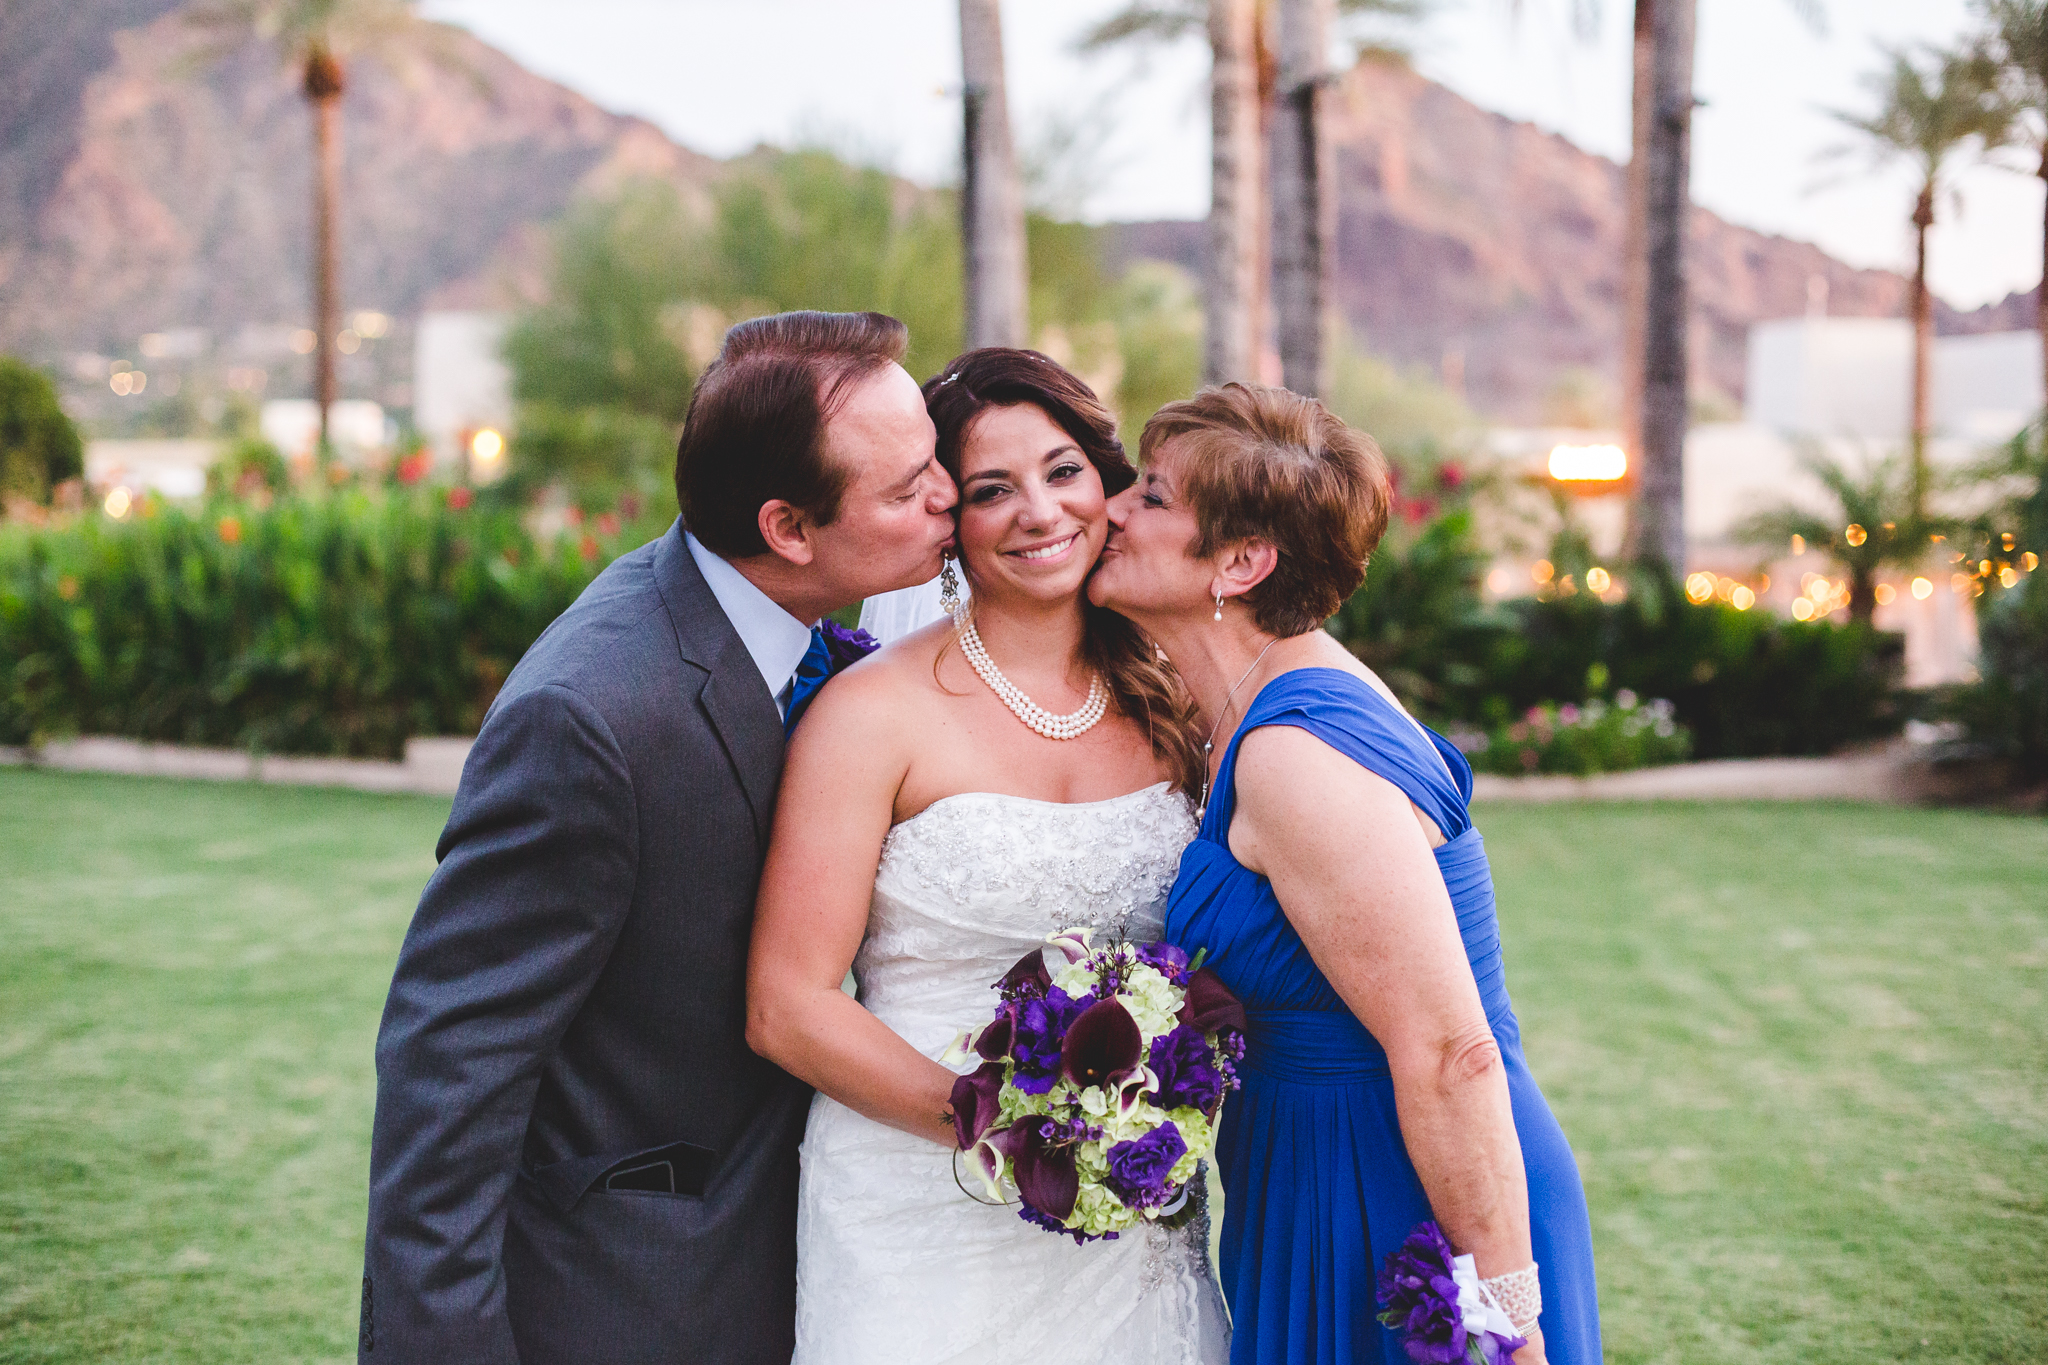 lc wedding parents kissing daughter